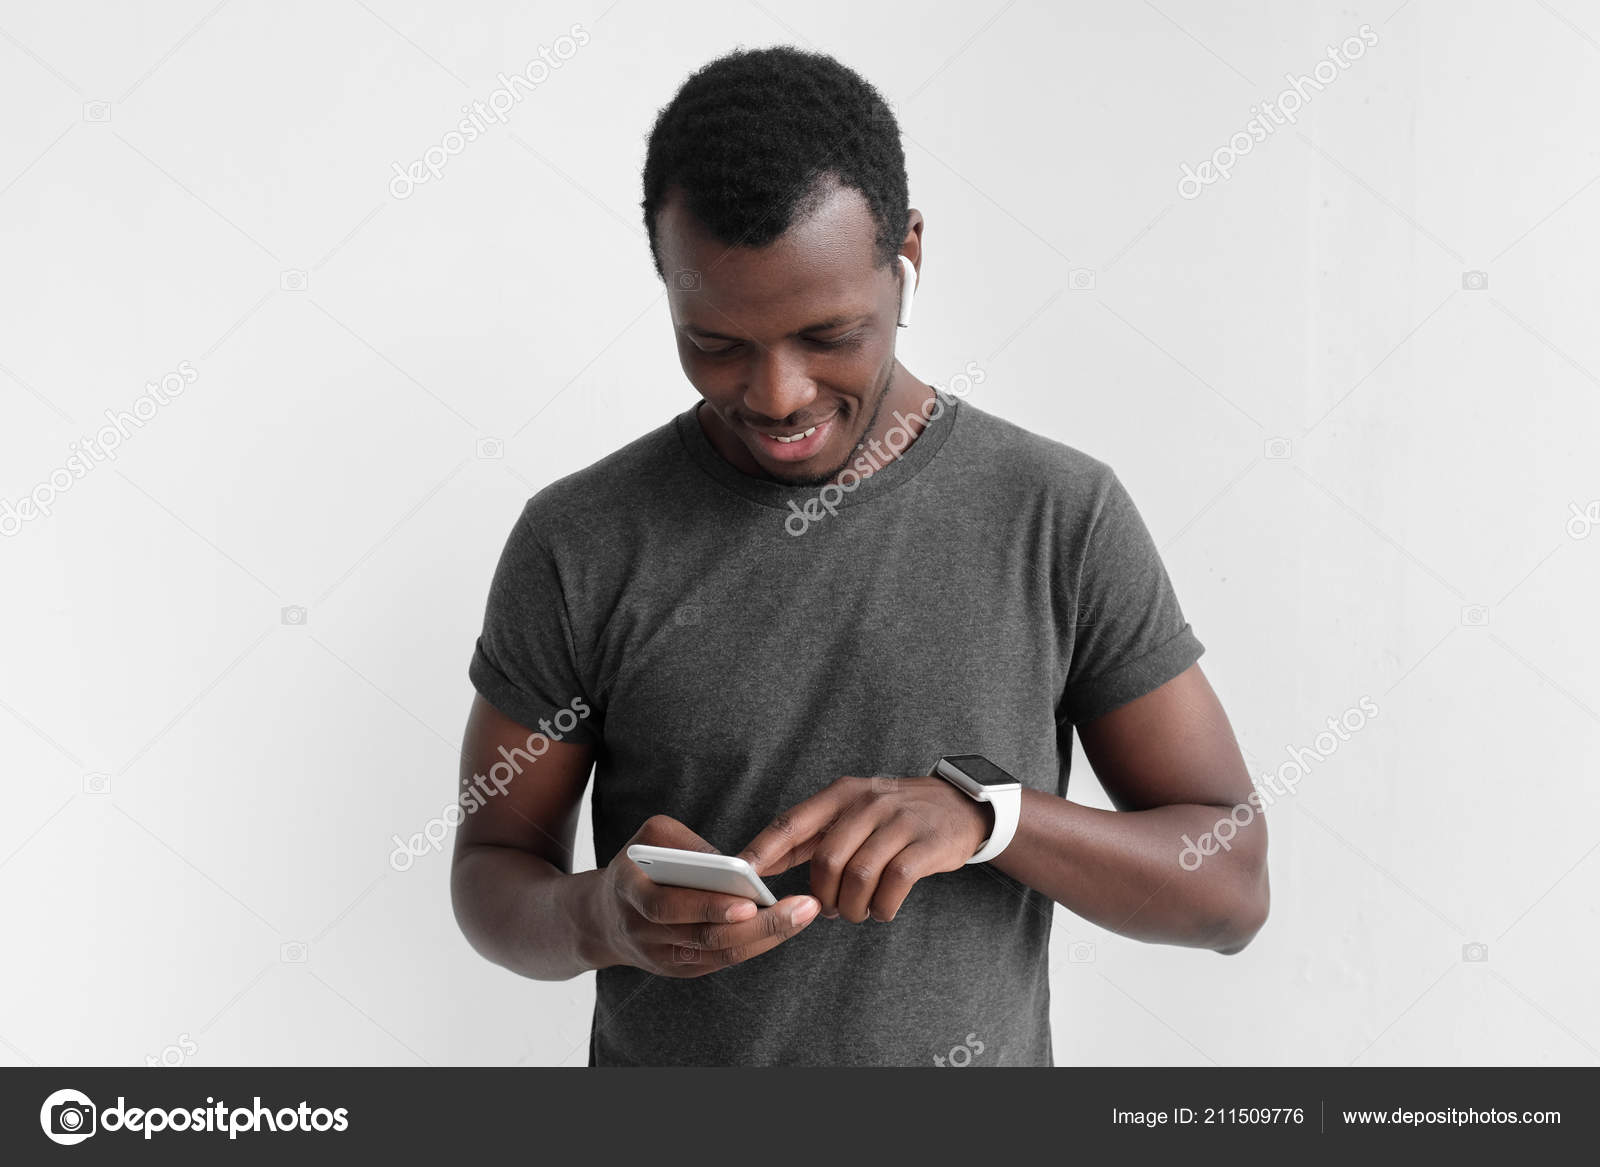 c8f12cf7129 Young african american dark skin man looking at smartphone while texting